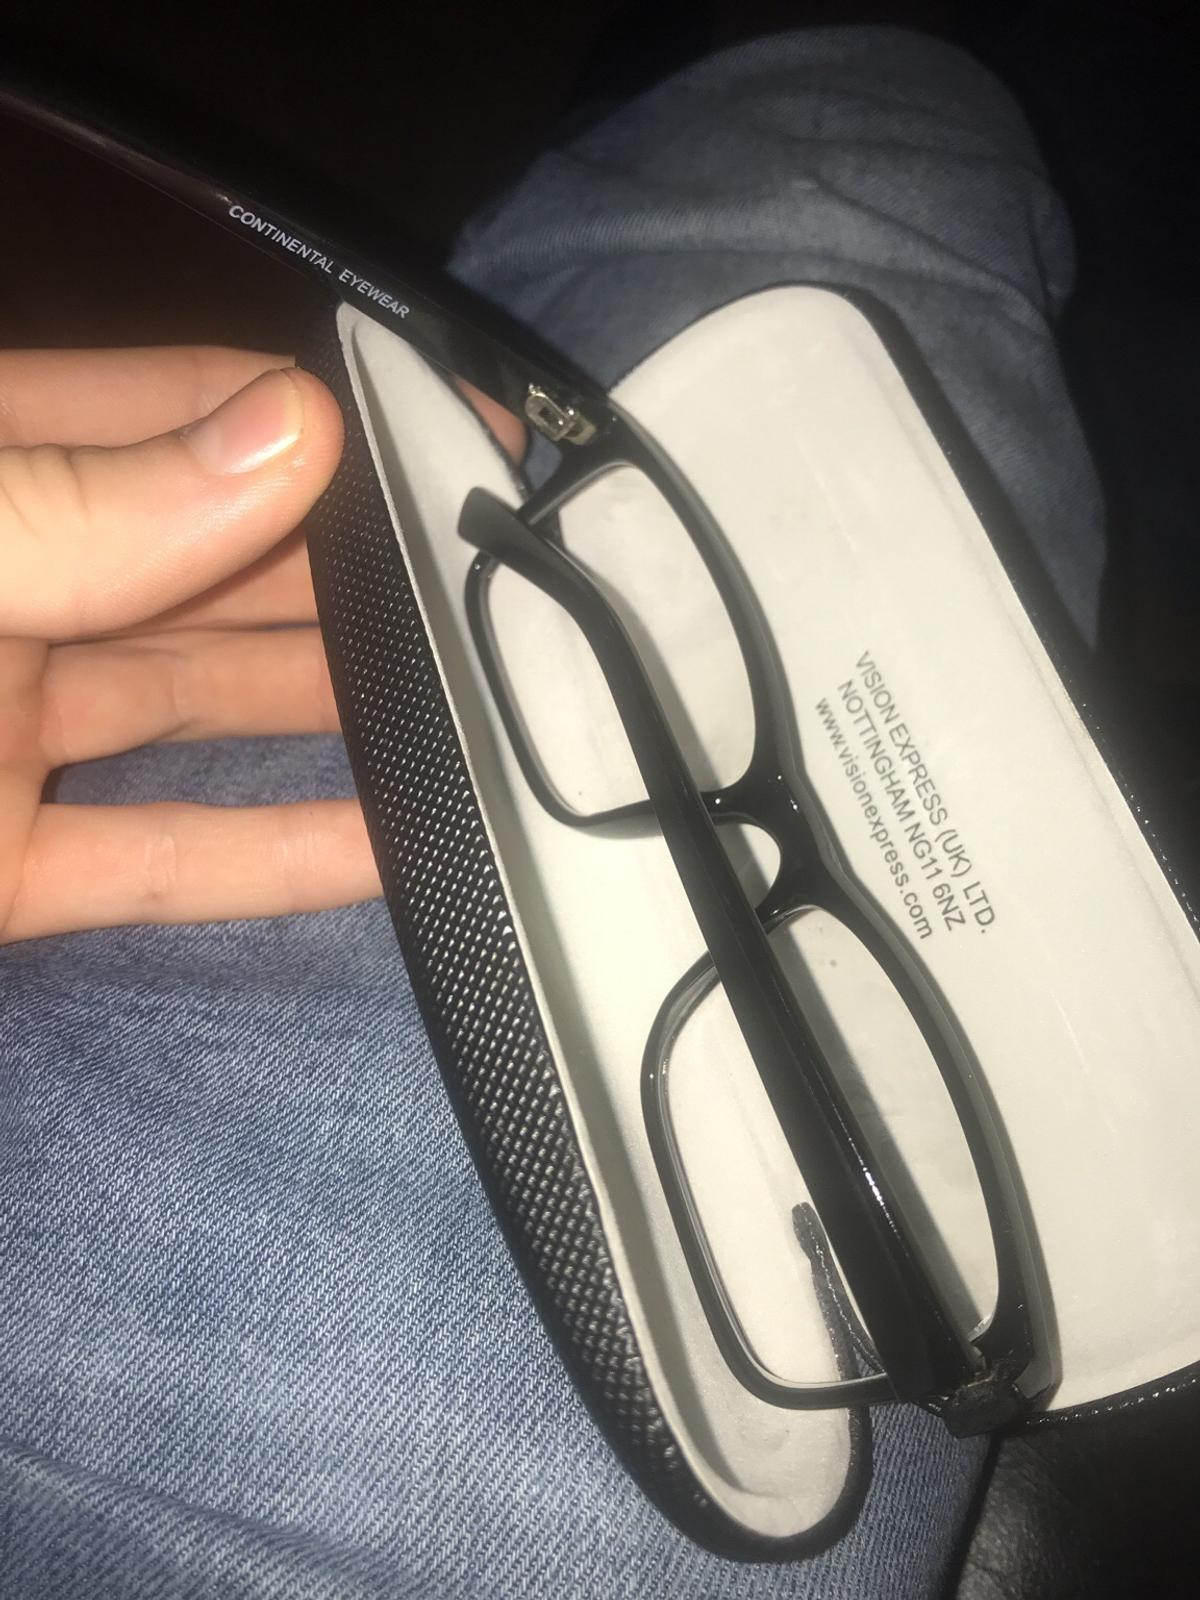 b6a9acf85d2d Vision Express Glasses in BR6 Bromley for £40.00 for sale - Shpock